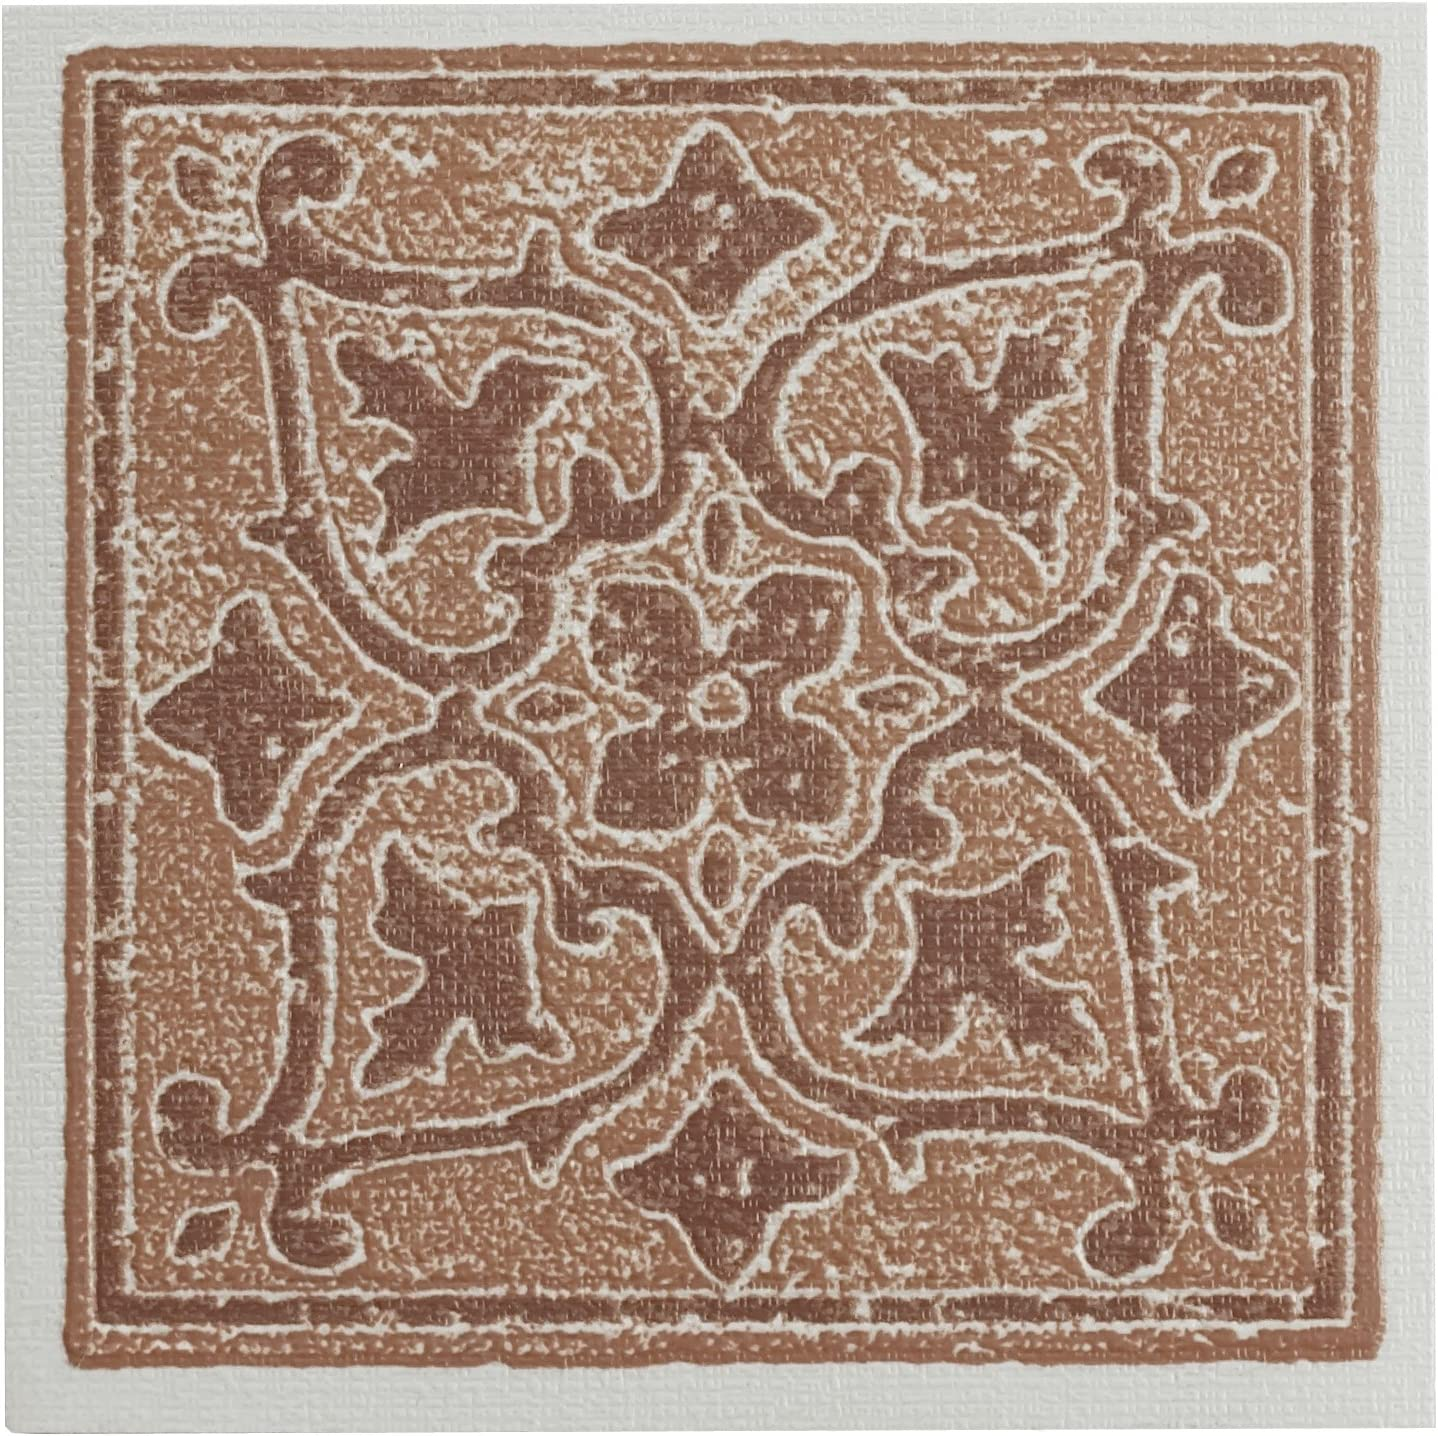 """Achim Home Furnishings WTV402AC10 Nexus Accent Wall Tile, 4 by 4-inch, Terra, 27-Pack, 4"""" x 4"""" x 1.5 mm Thick"""